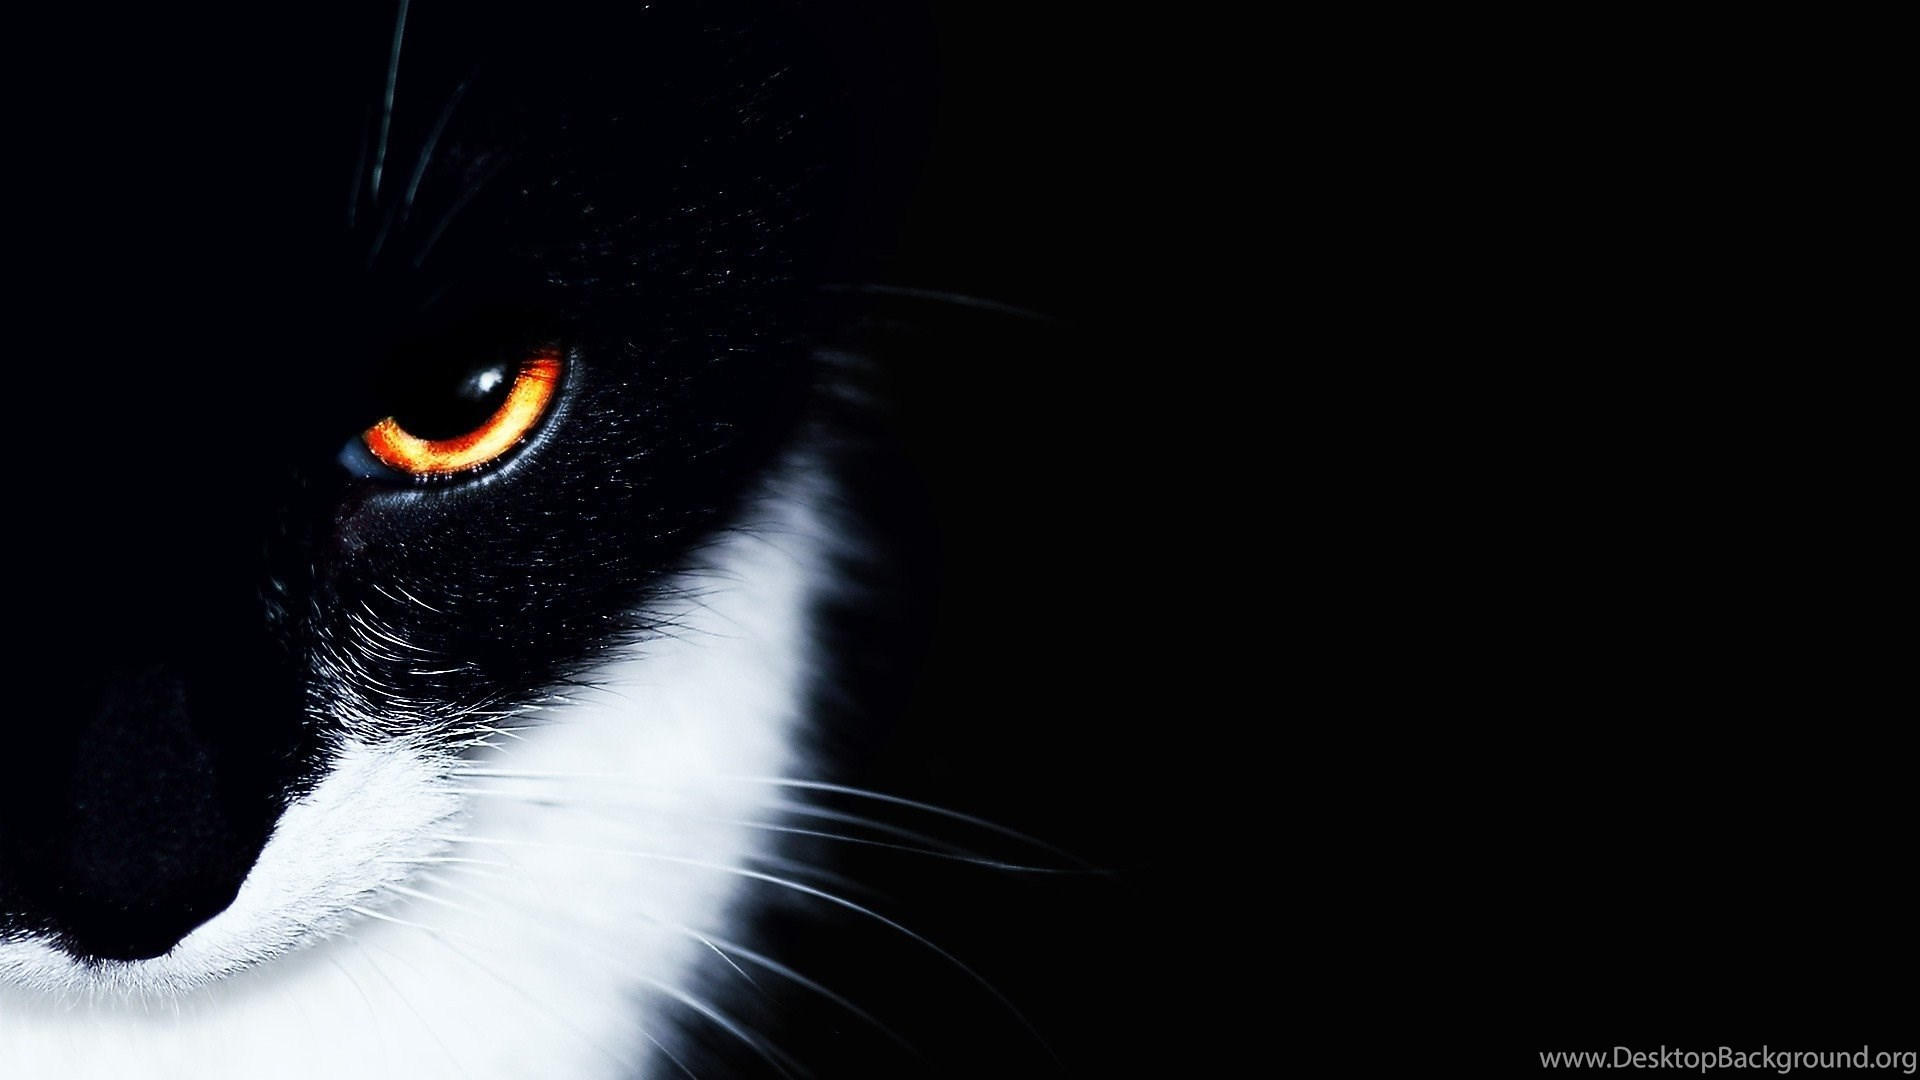 Hd Wallpapers 1920x1080 Animals Cat Black White Eye Hd Petpictures